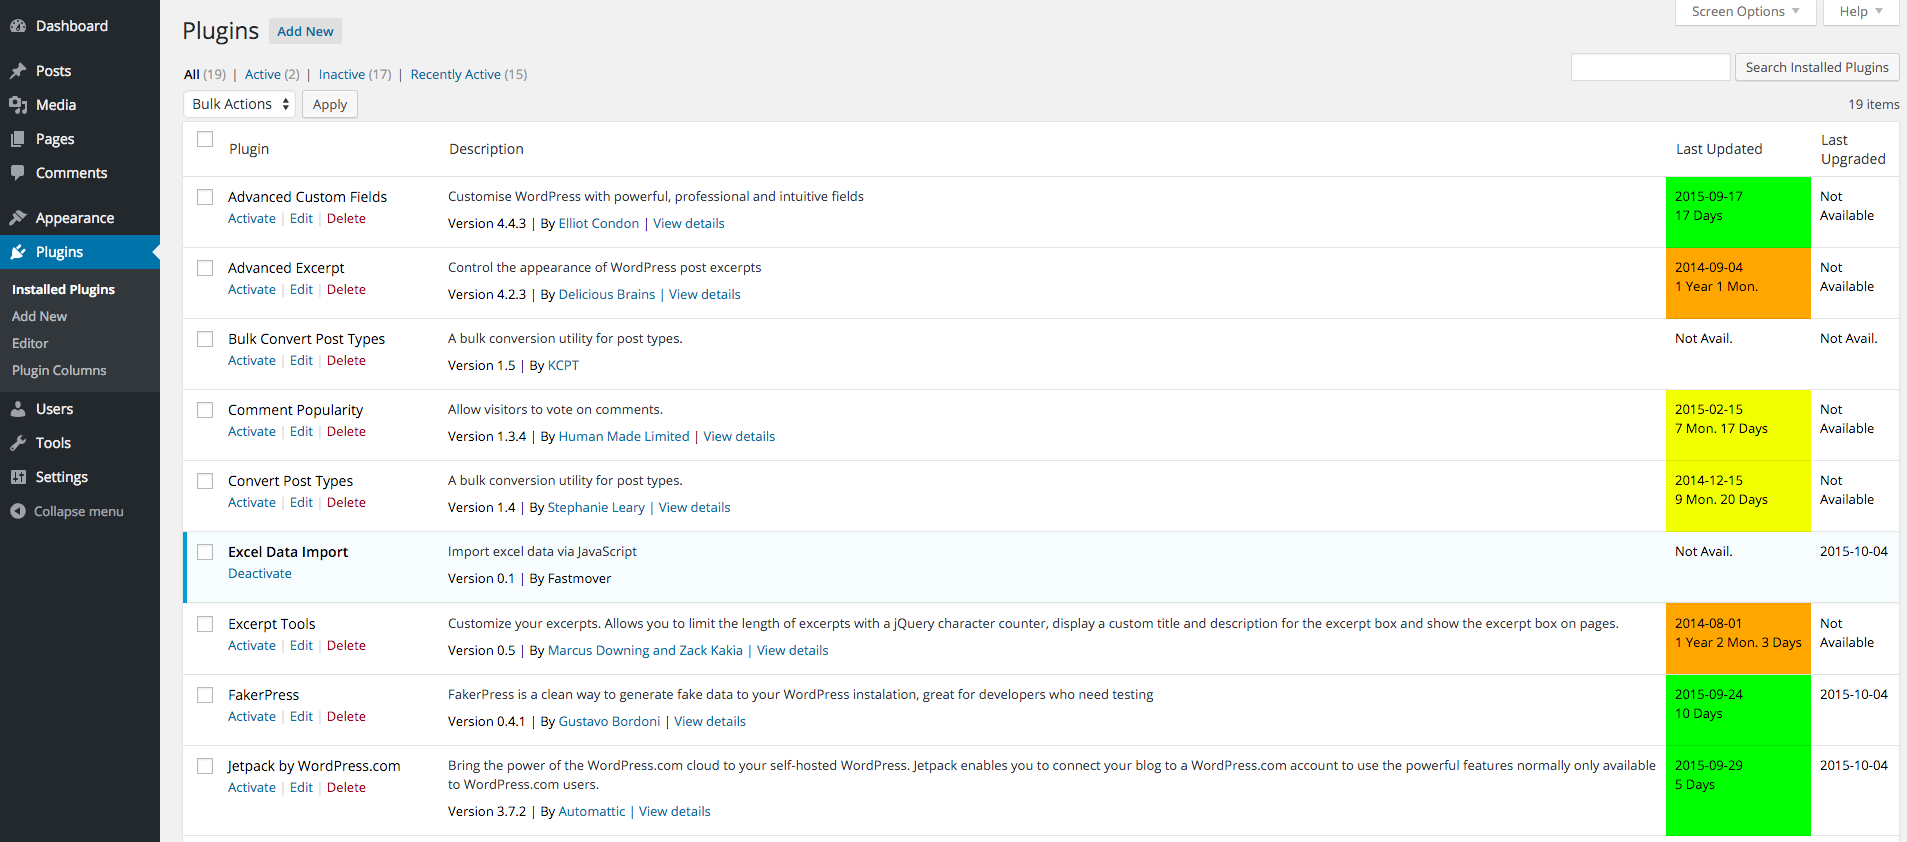 As you can see, the plugins table now has 2 columns on the right side labeled: Last Updated and Last Upgraded.